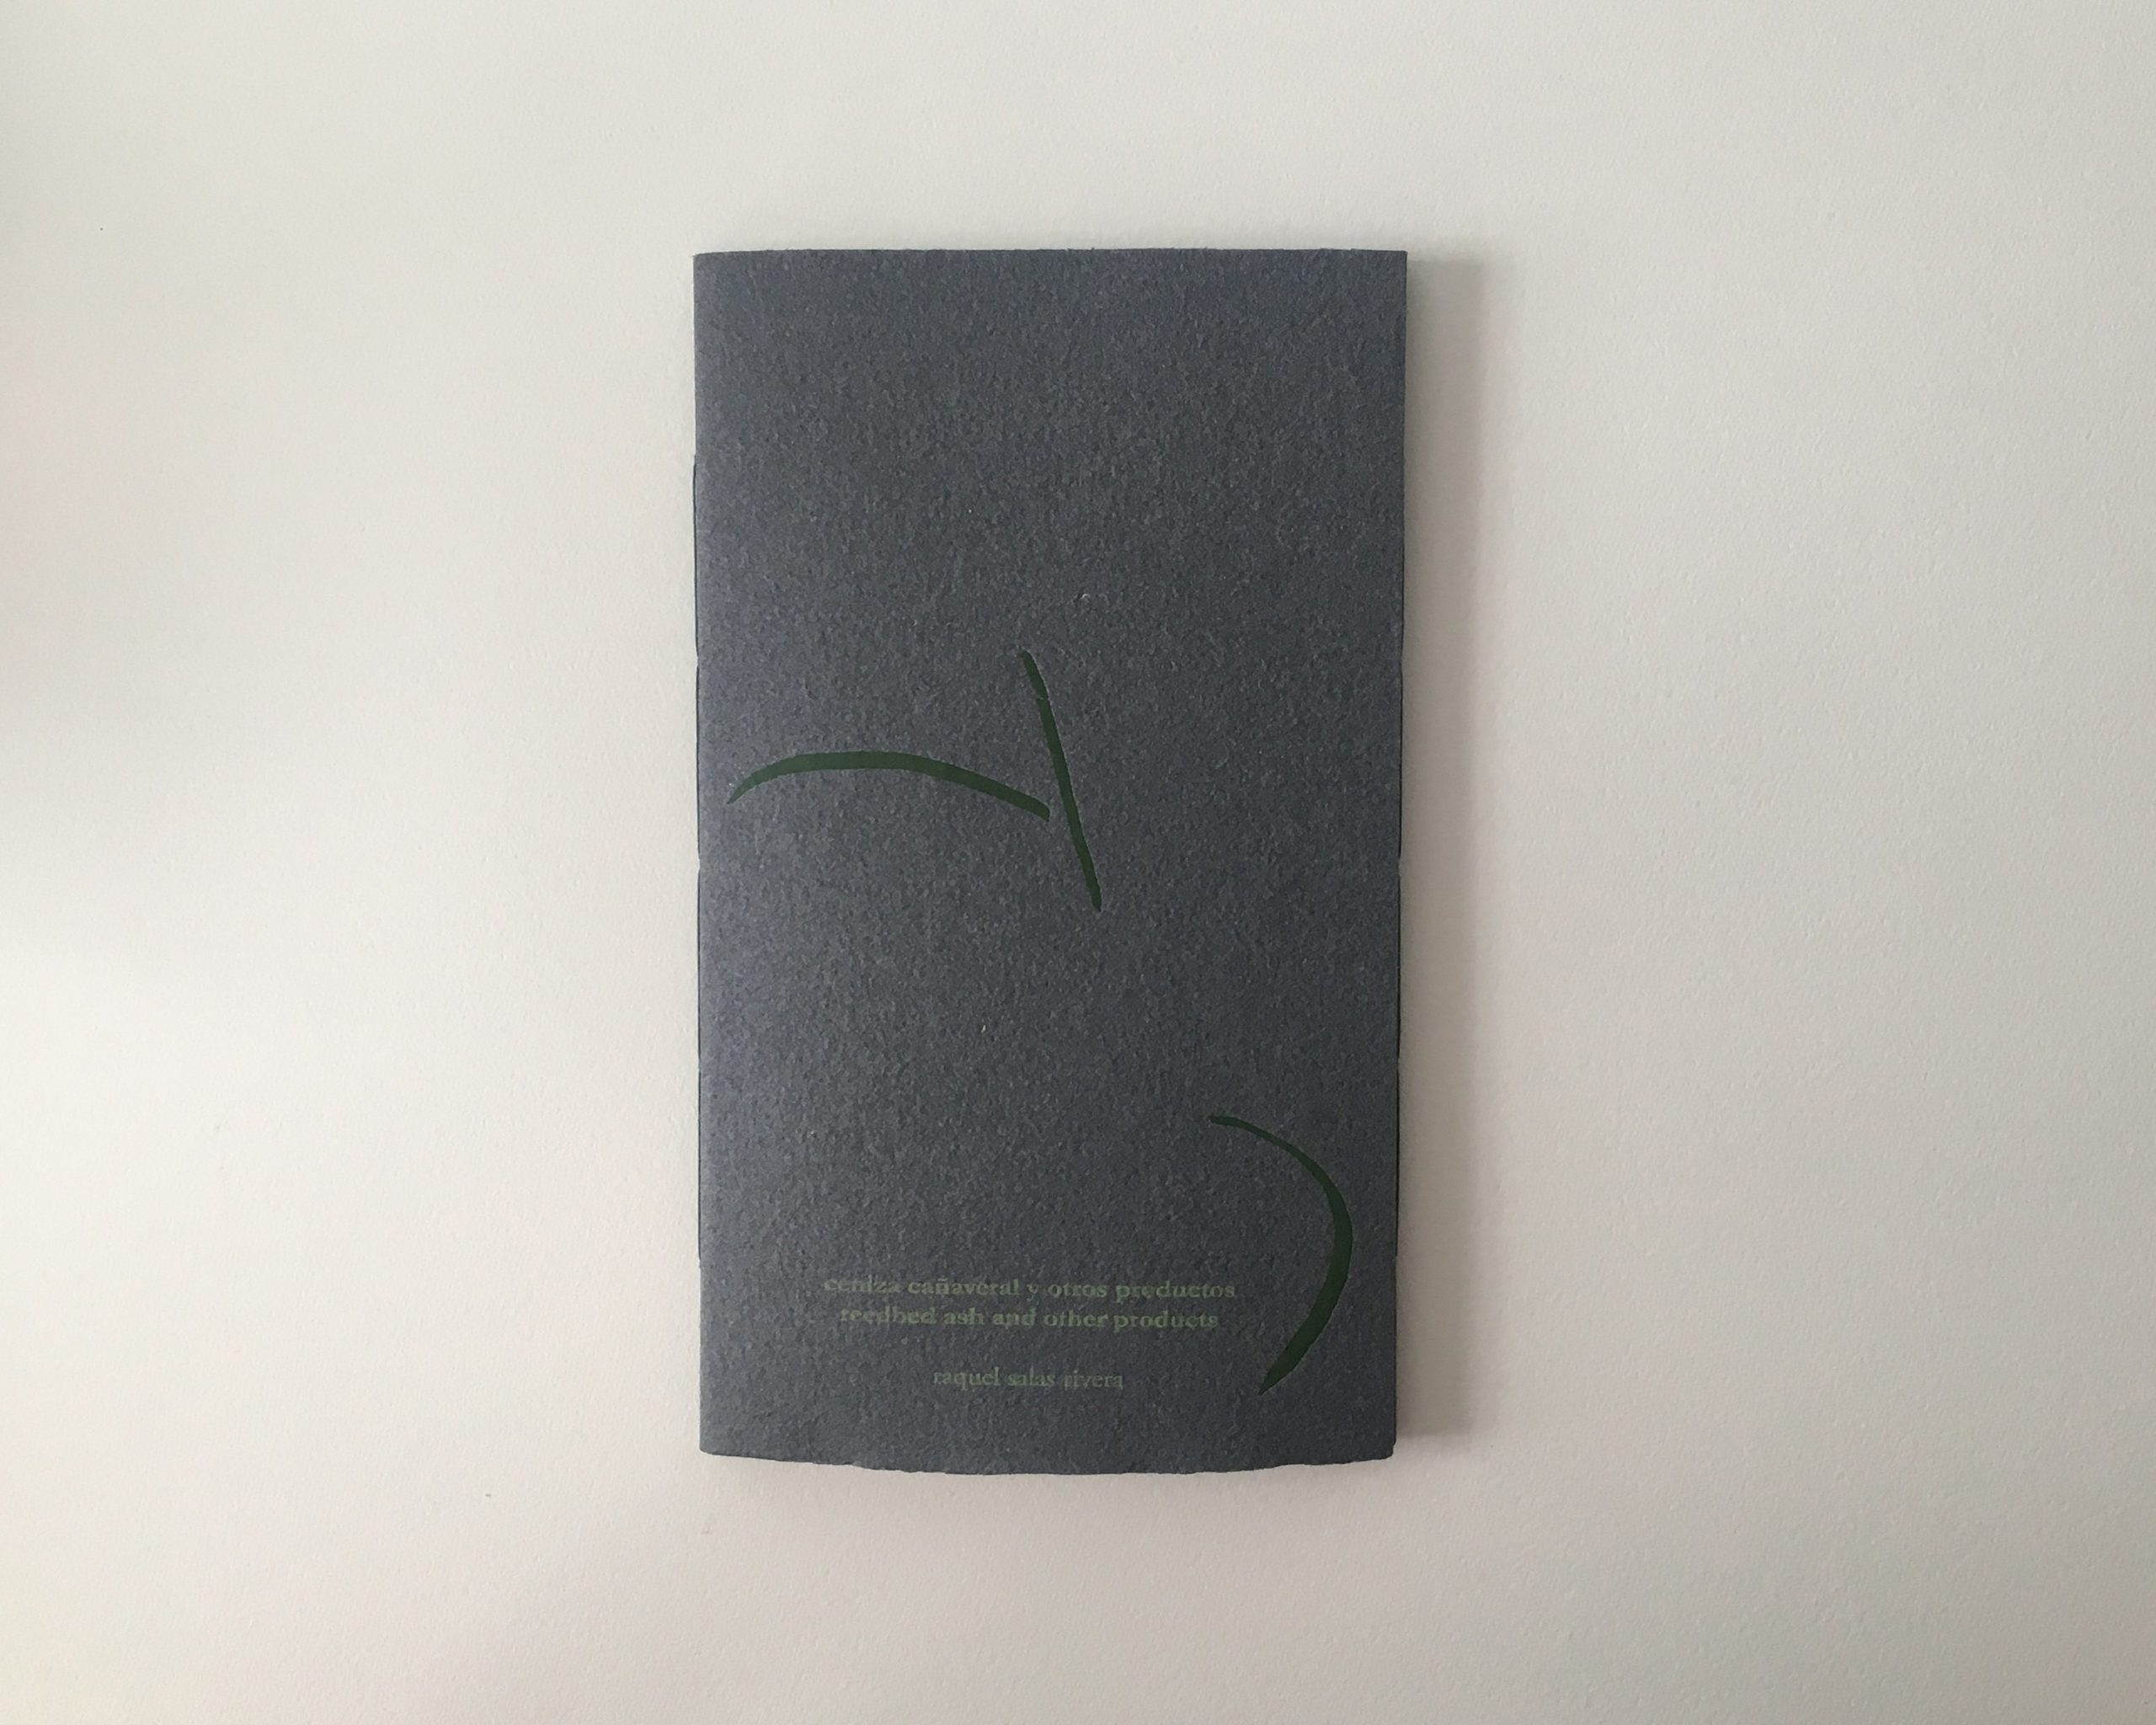 cover of reedbed ash and other products (2020) Raquel Salas Rivera